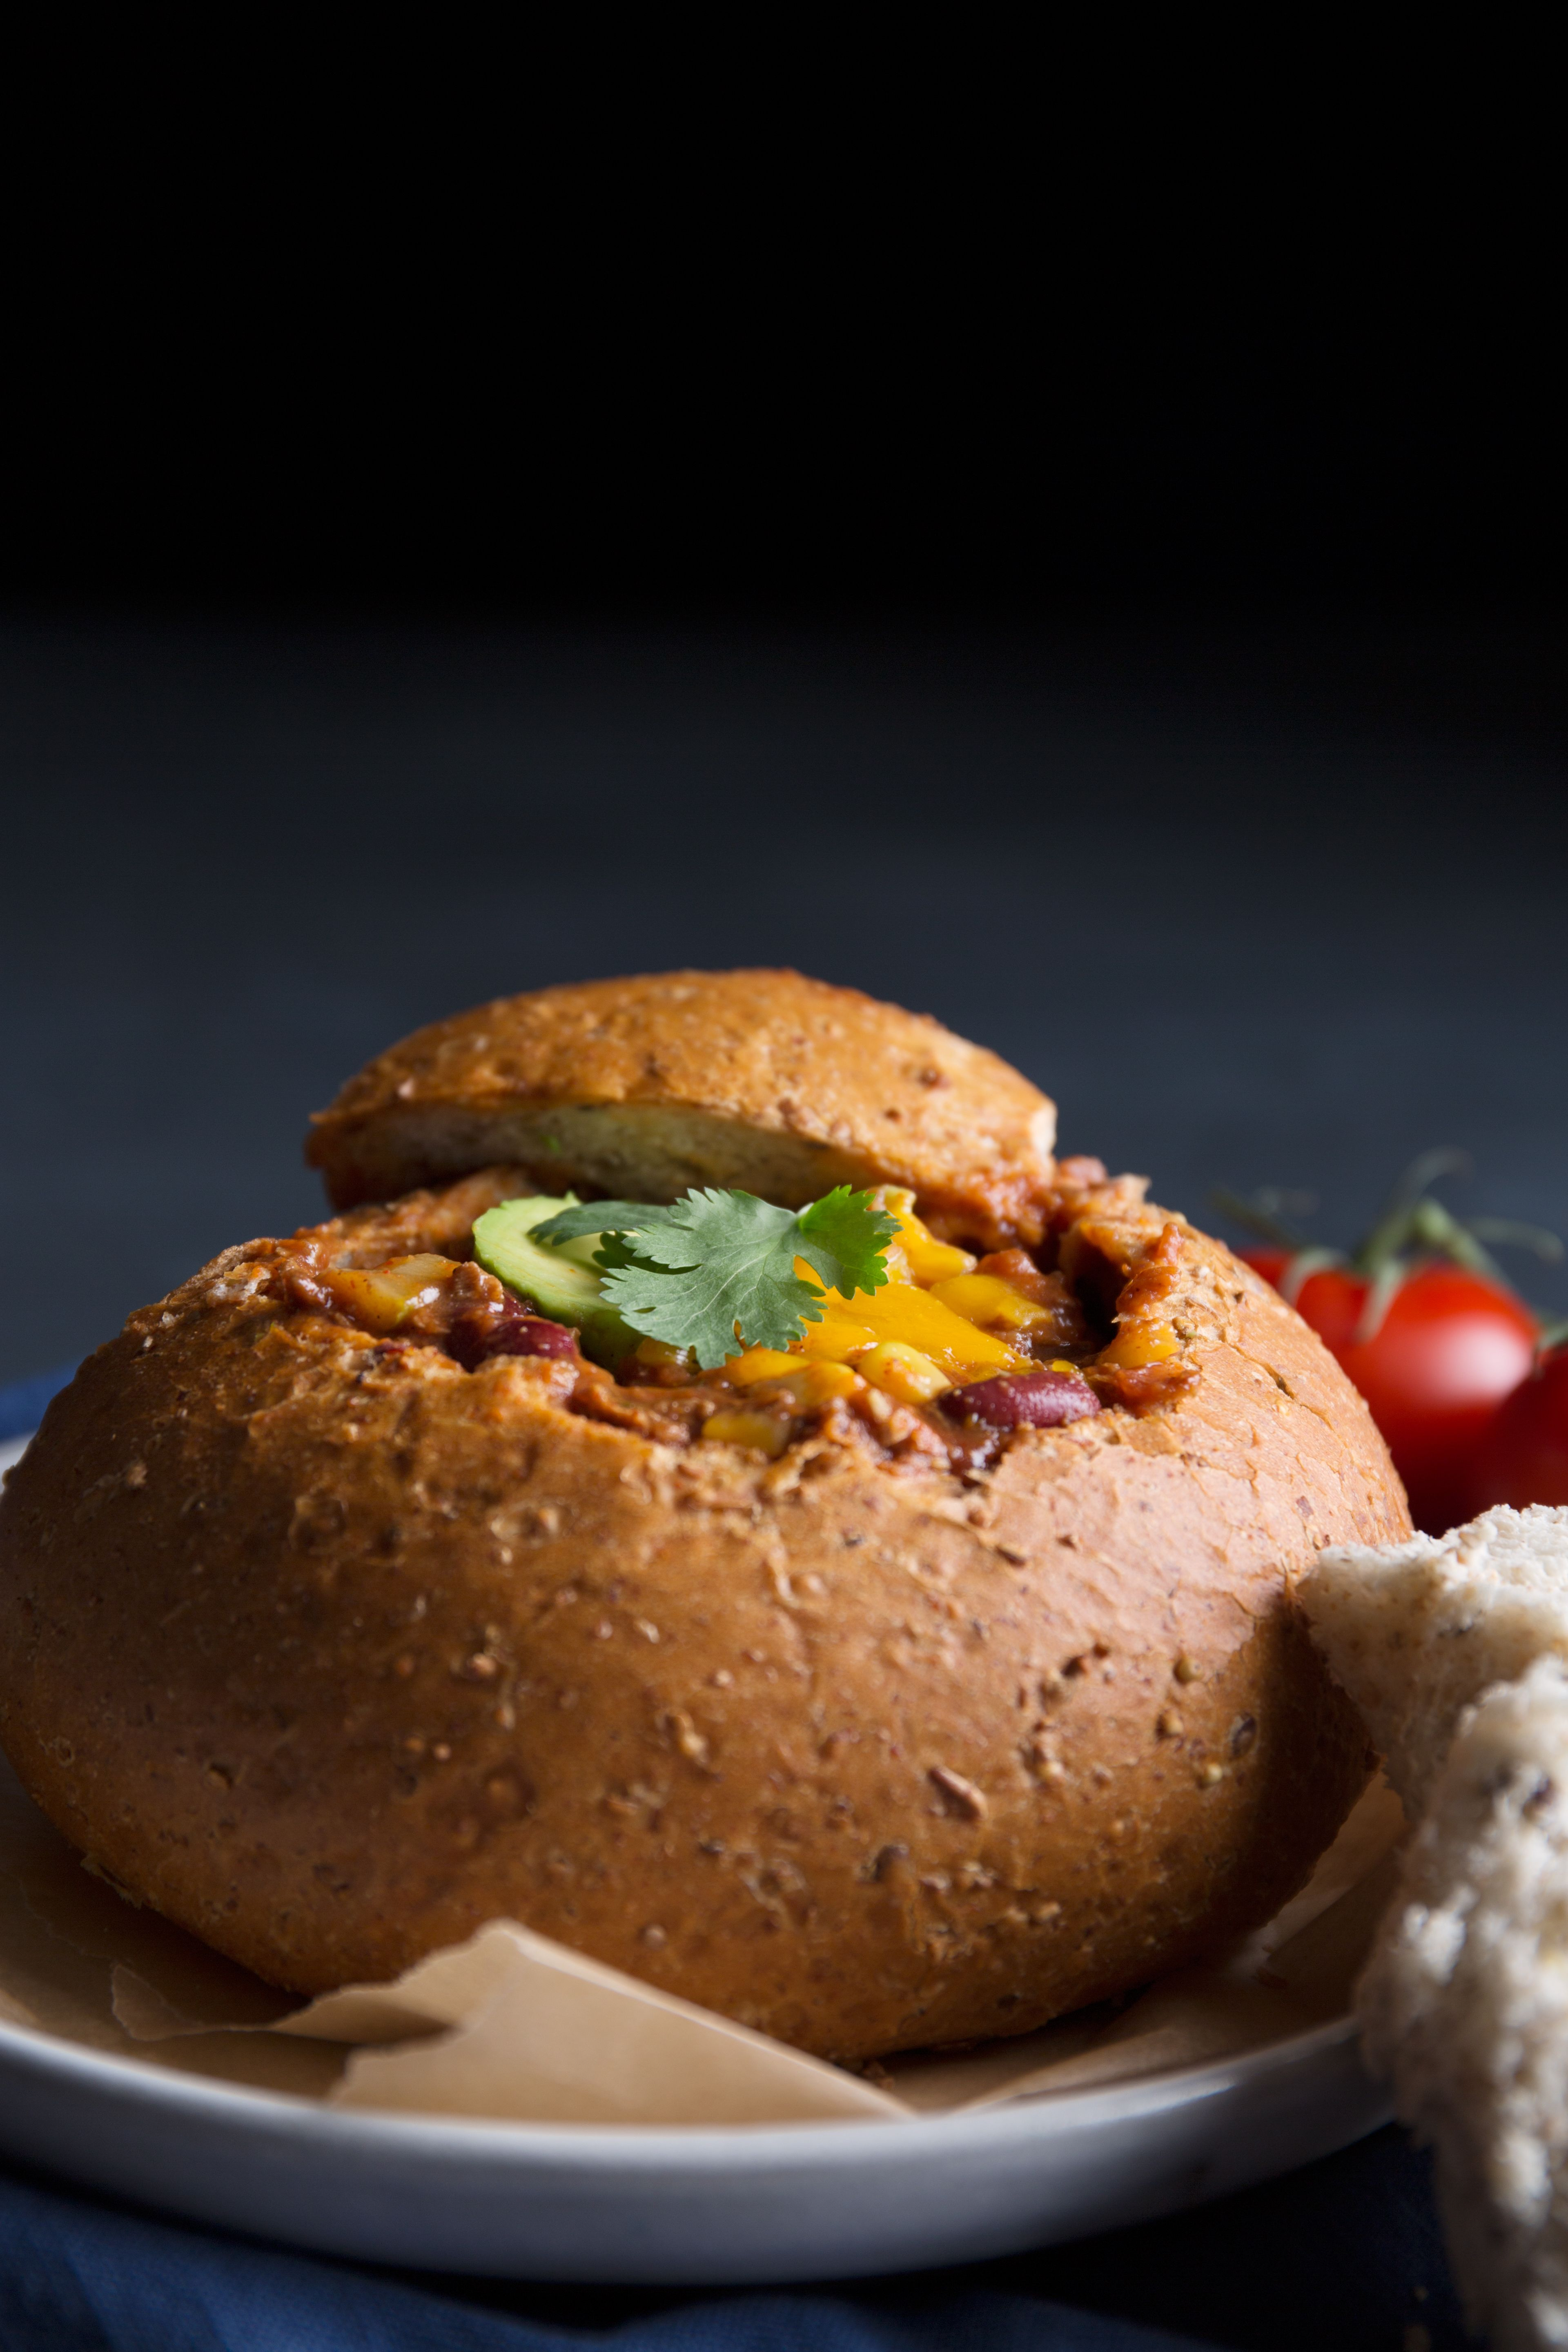 Slurp soup out of a crusty bread bowl, which doubles as a serving dish and a tasty snack. Make your own out of an oversized roll, or search Groupon for restaurants in your neighborhood that are dishing out hearty winter fare